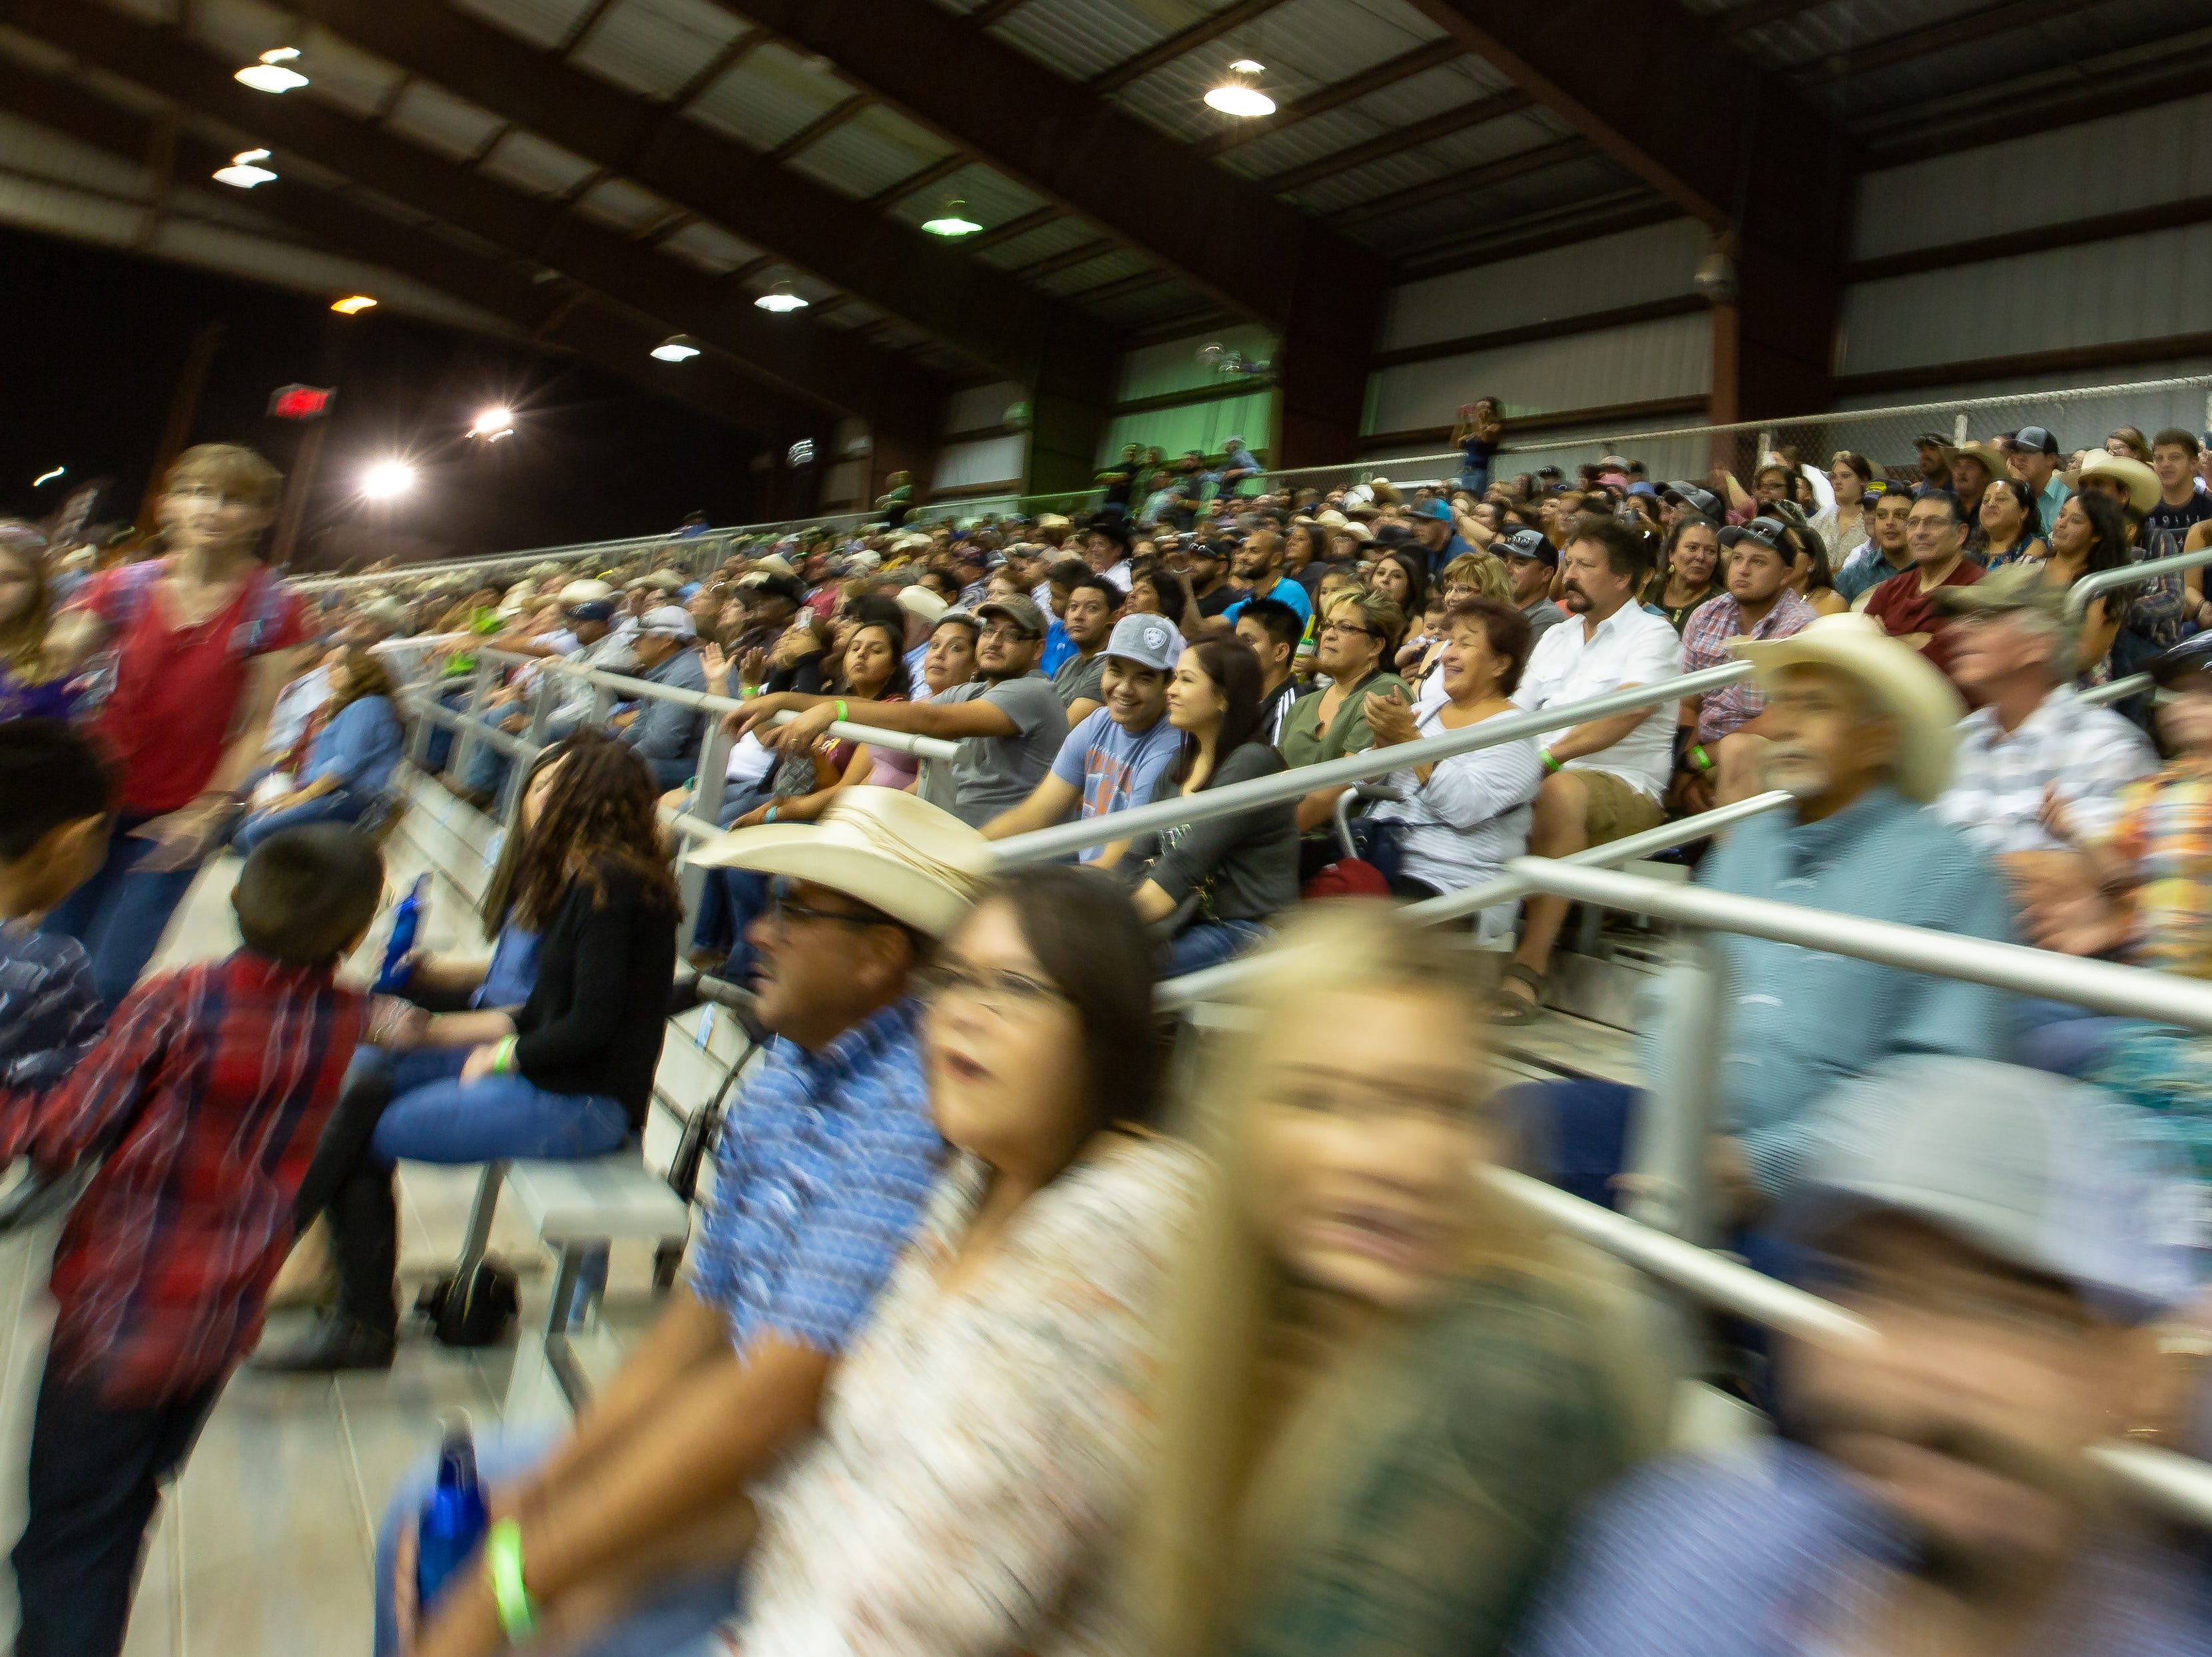 Patrons fill the Pete V. Domenici Arena on Saturday, Sept. 29, 2018, during the Southern New Mexico State Fair & Rodeo at the Southern New Mexico State Fairgrounds.